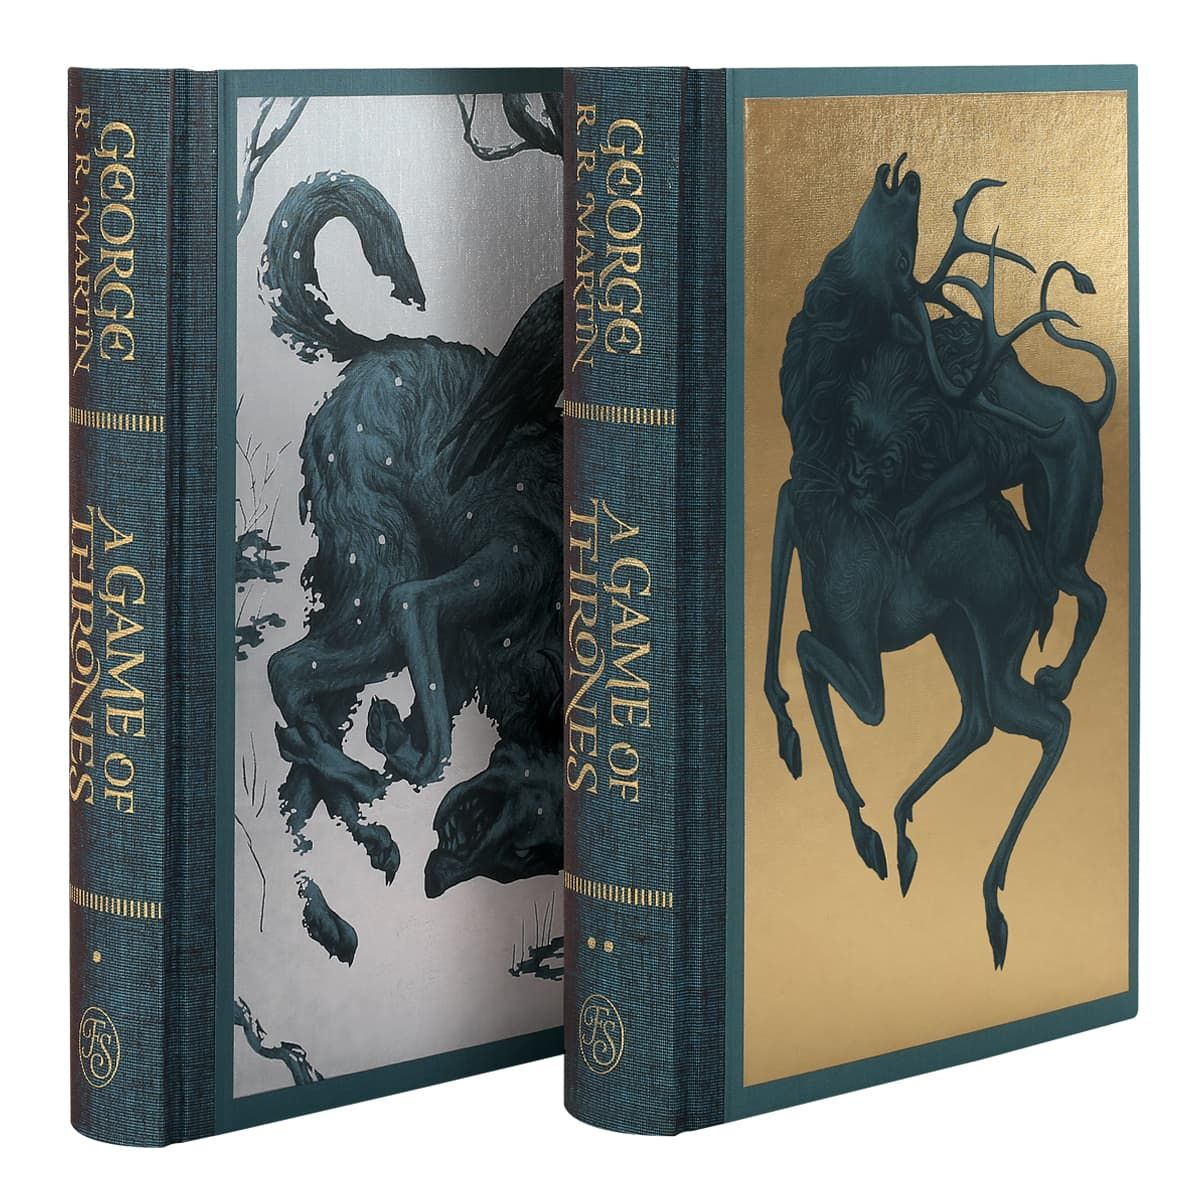 george martin game of thrones FS covers